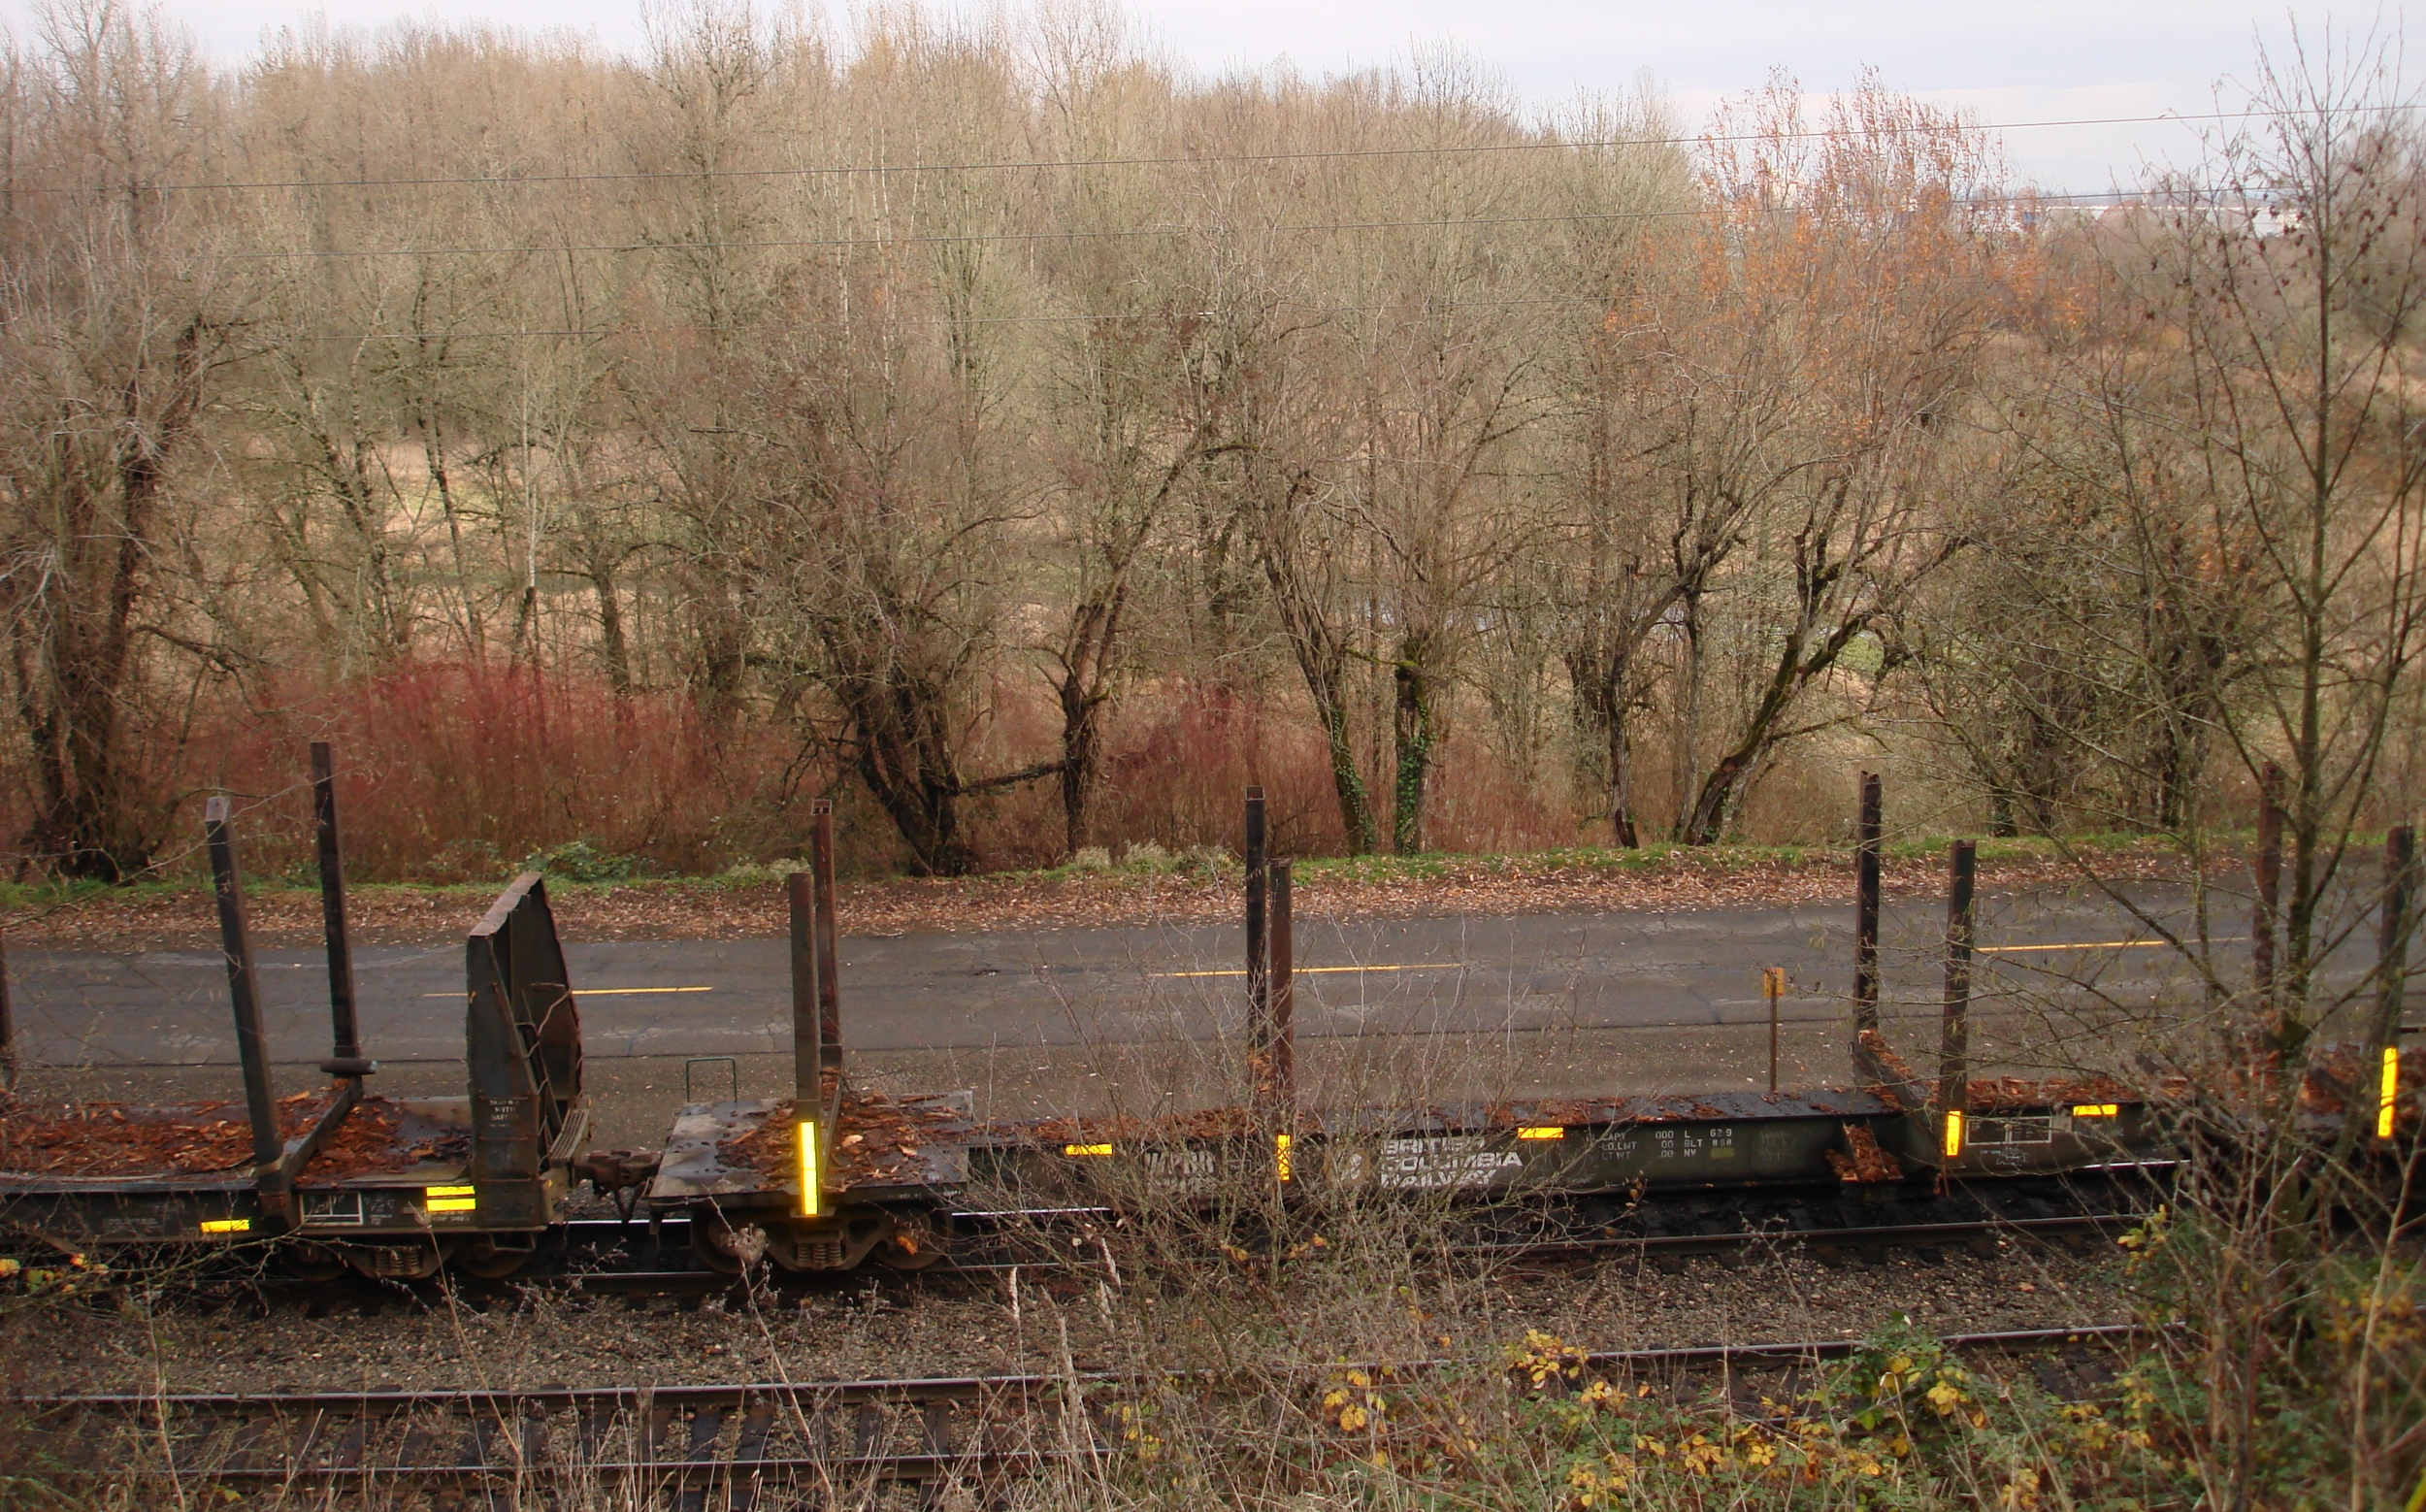 Looking from the highway, these are the railroad tracks and Marina Way, with the pond beyond the willows and red-osier dogwood.